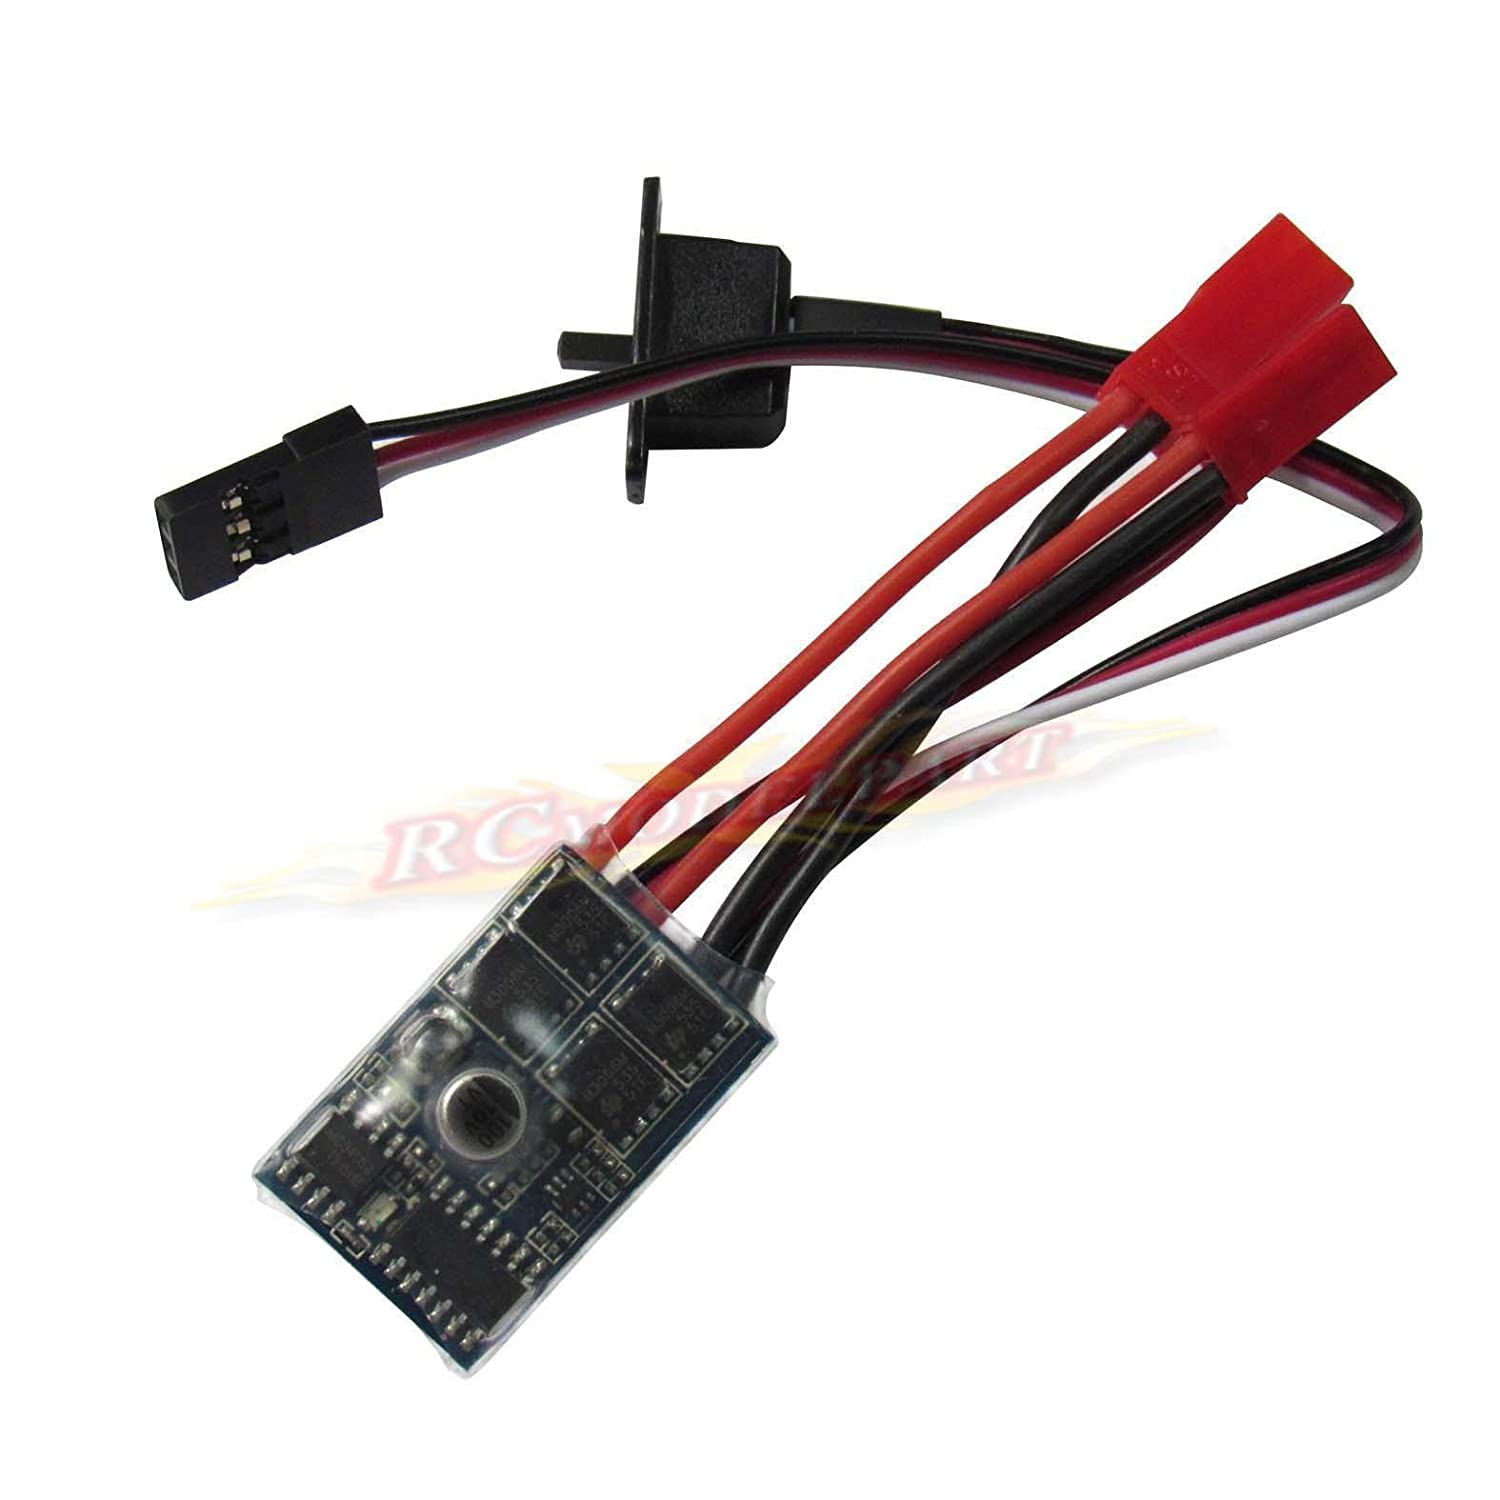 Hobbypower Rc ESC 10a Brushed Motor Speed Controller for 1/16 18 Rc Car Boat Tank w/ Brake JXH